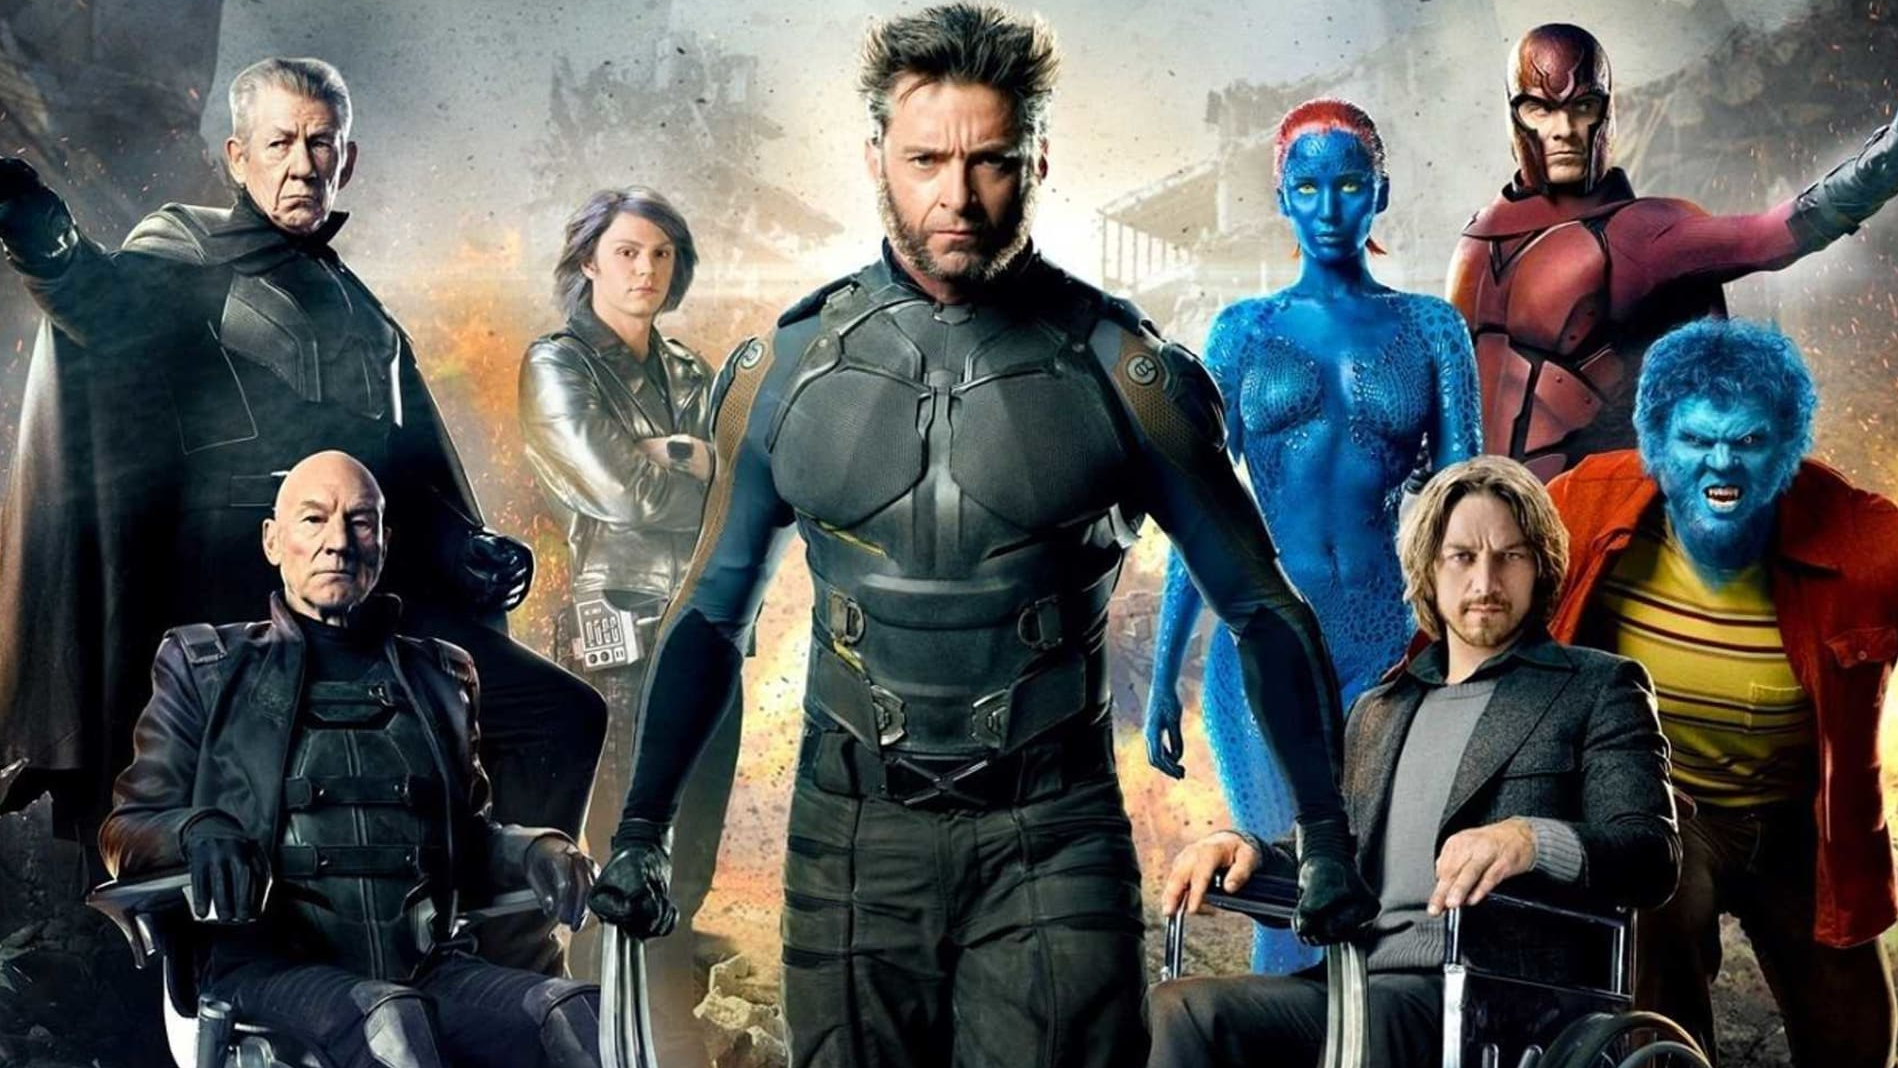 The Original X-Men Cast Is Returning For A Marvel Movie Project